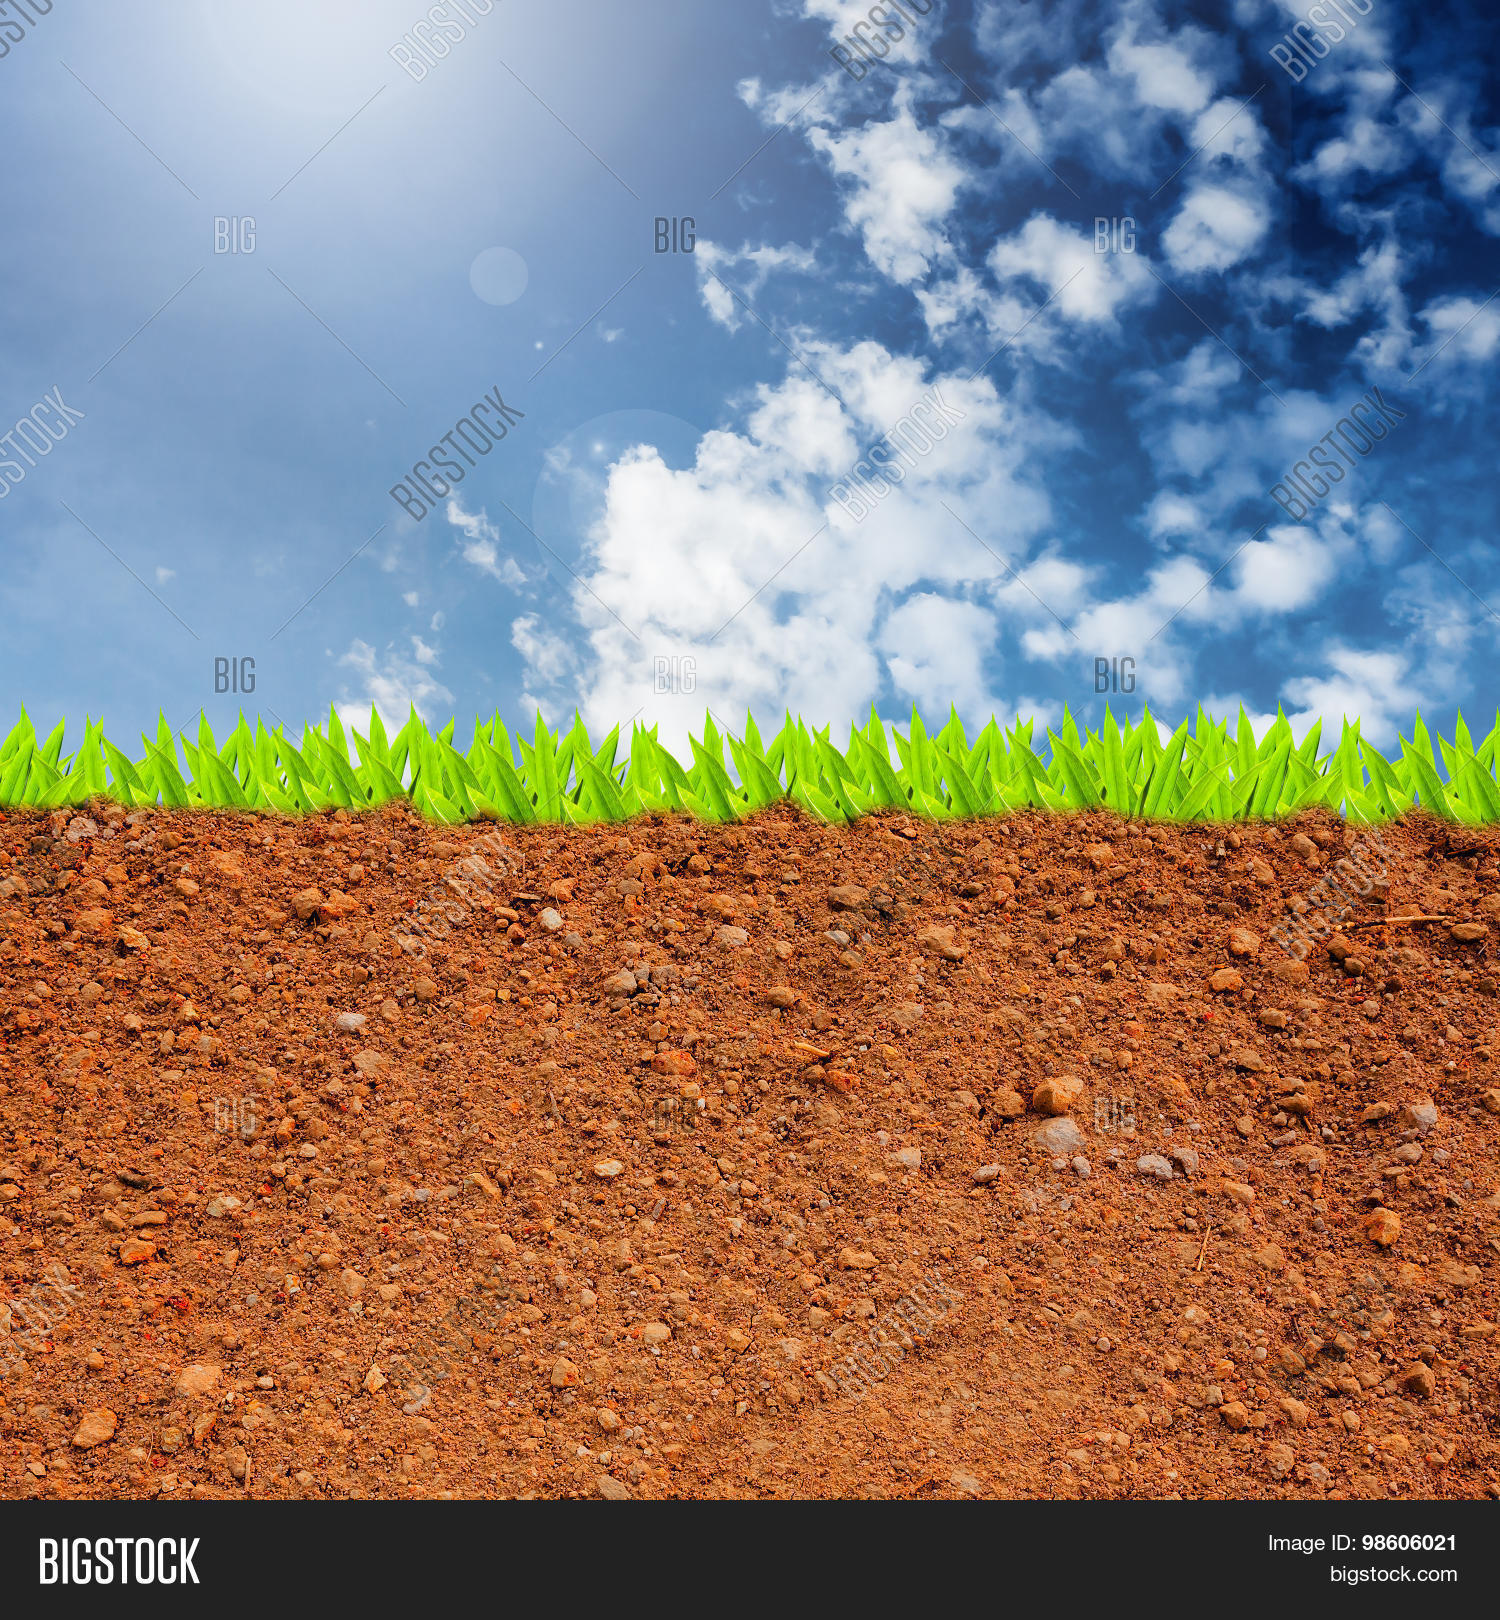 Cross Section Grass Image & Photo (Free Trial)